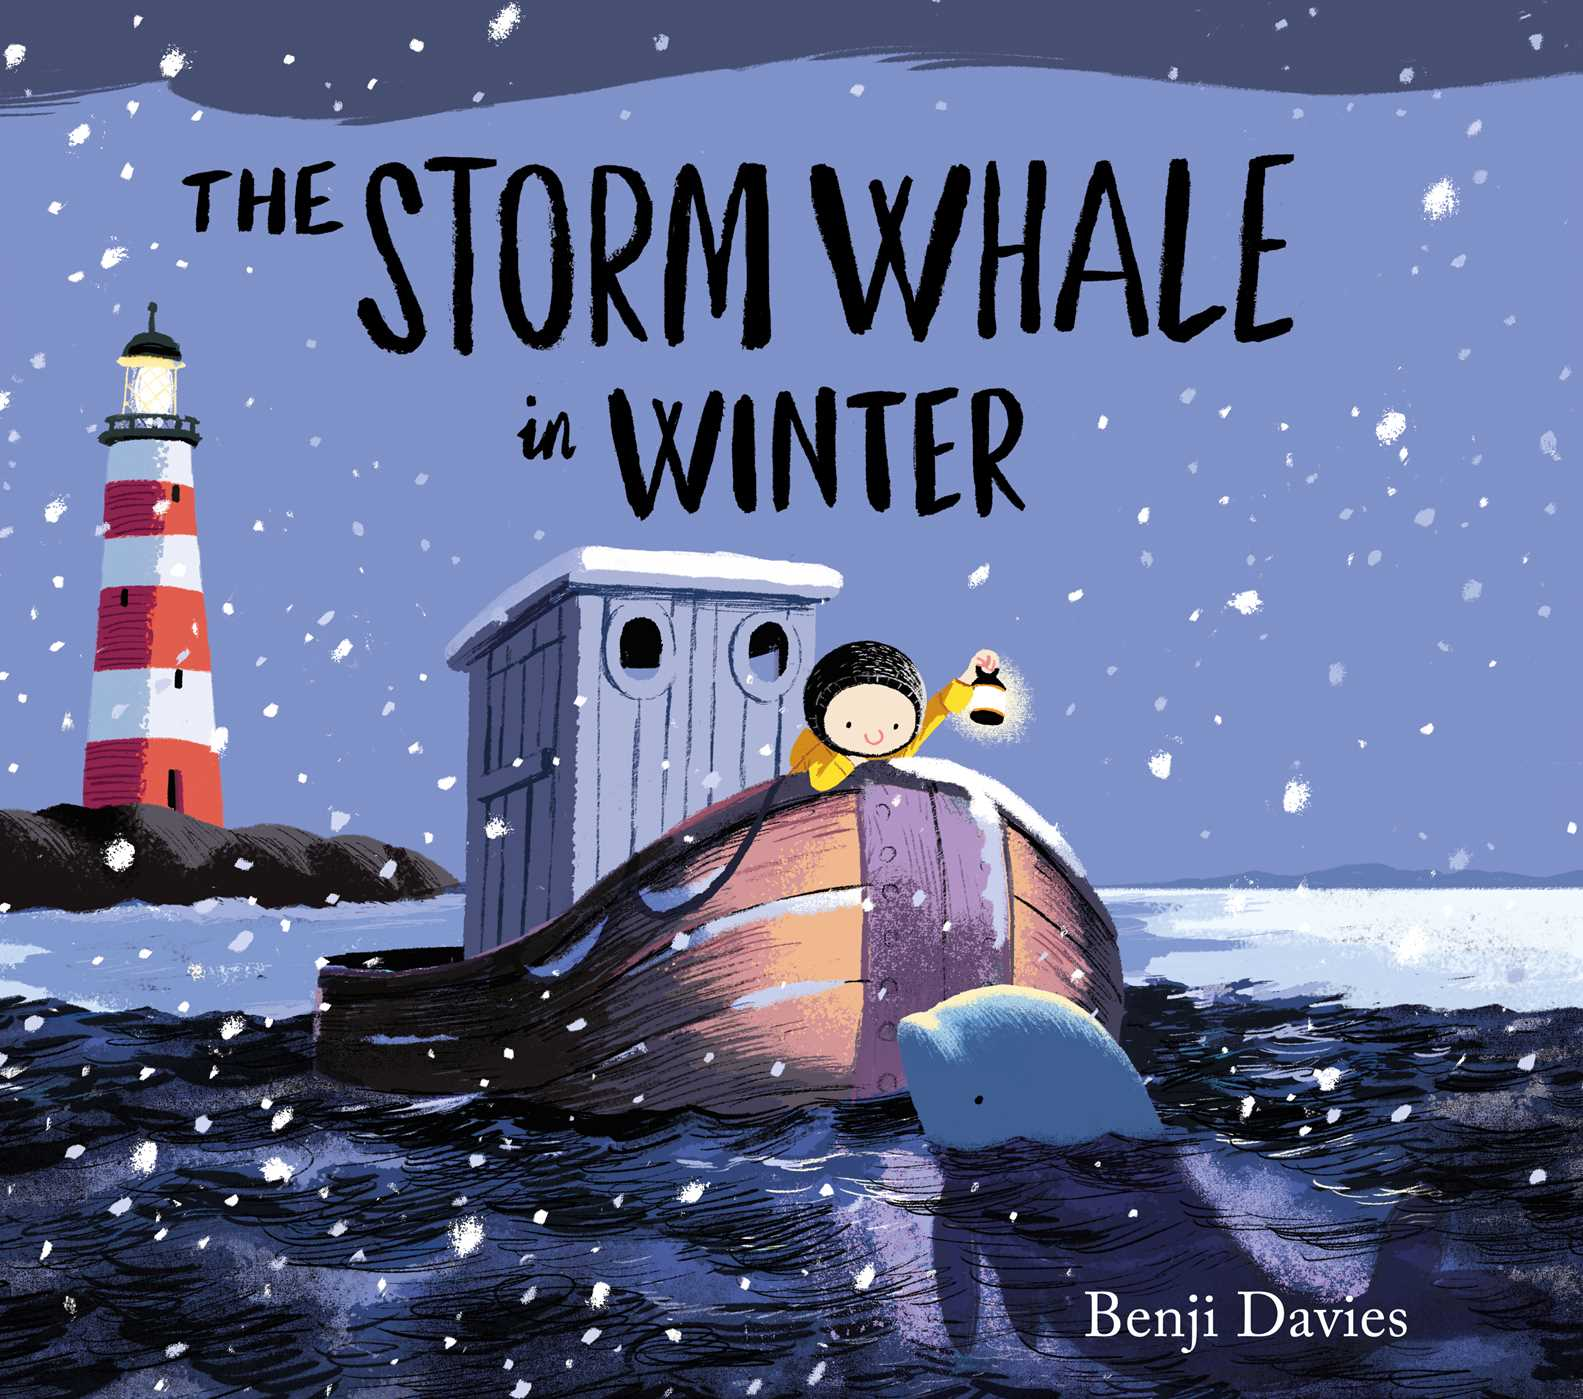 The storm whale in winter 9781471119972 hr